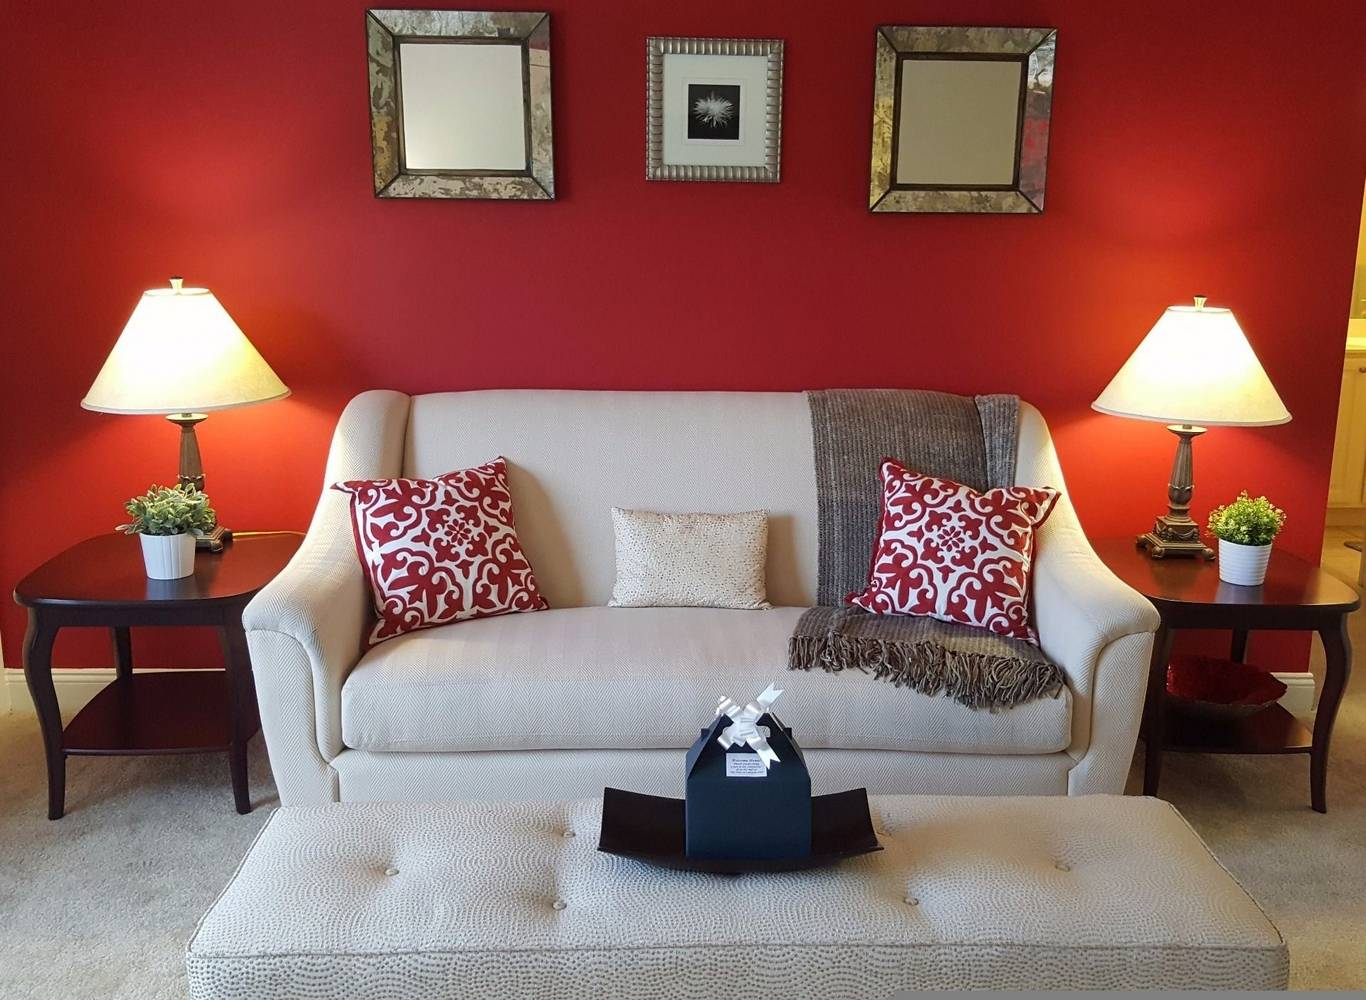 Red living area with white couch